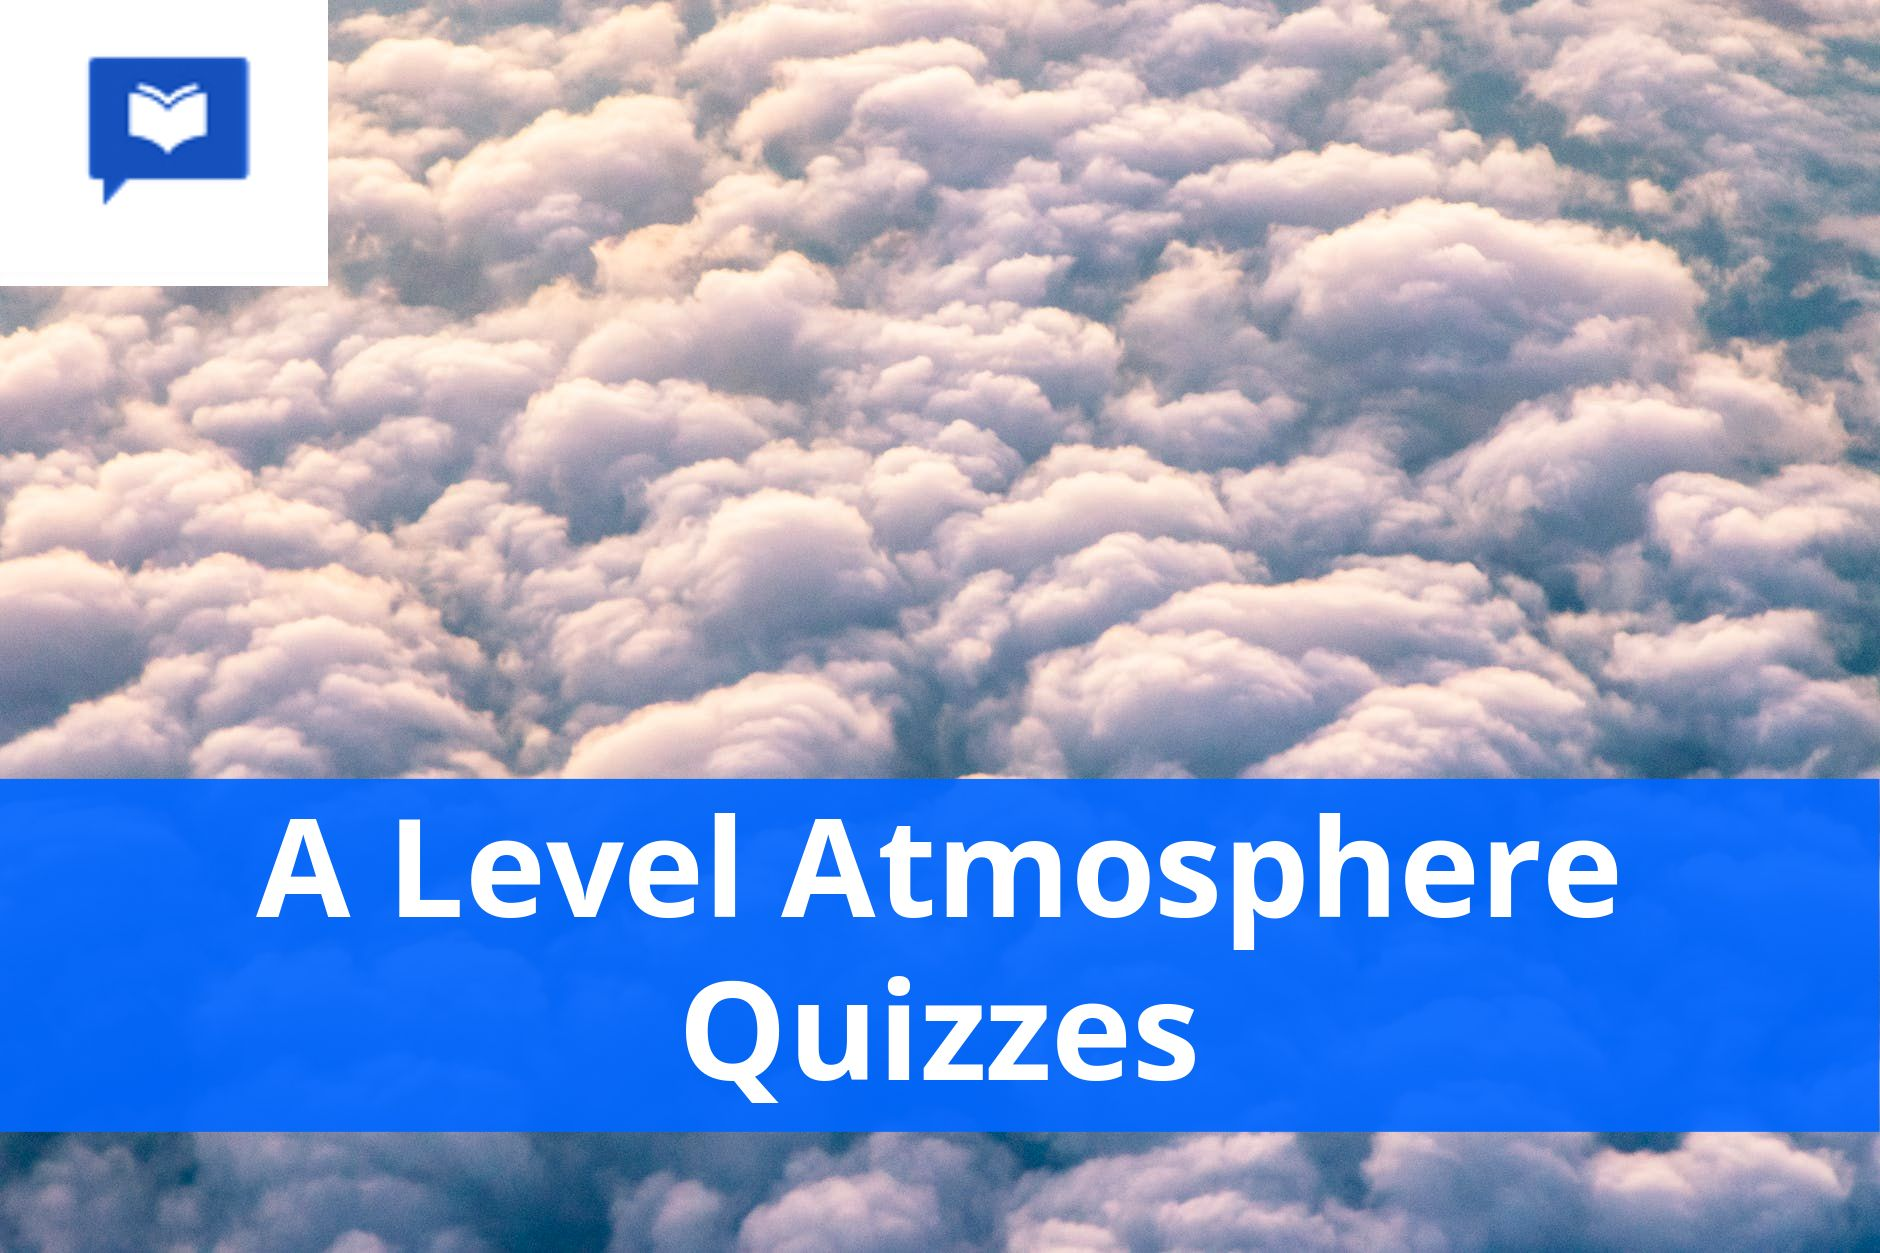 A level Atmosphere Quizzes